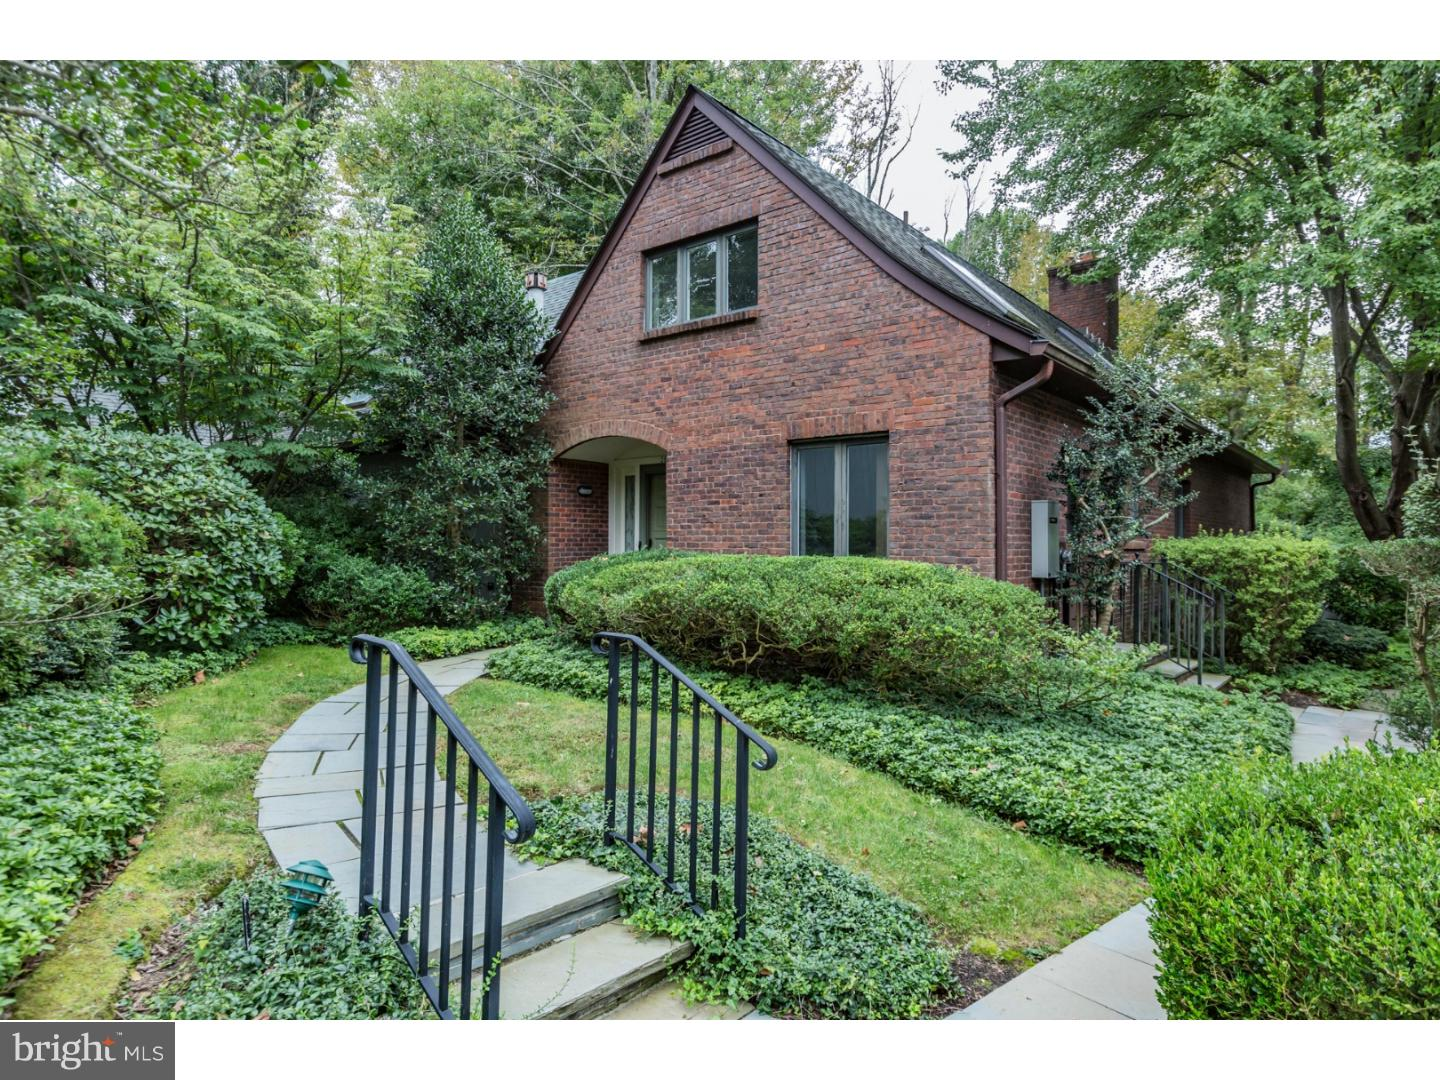 Single Family Home for Sale at 28 CONSTITUTION HL W Princeton, New Jersey 08540 United StatesMunicipality: Princeton